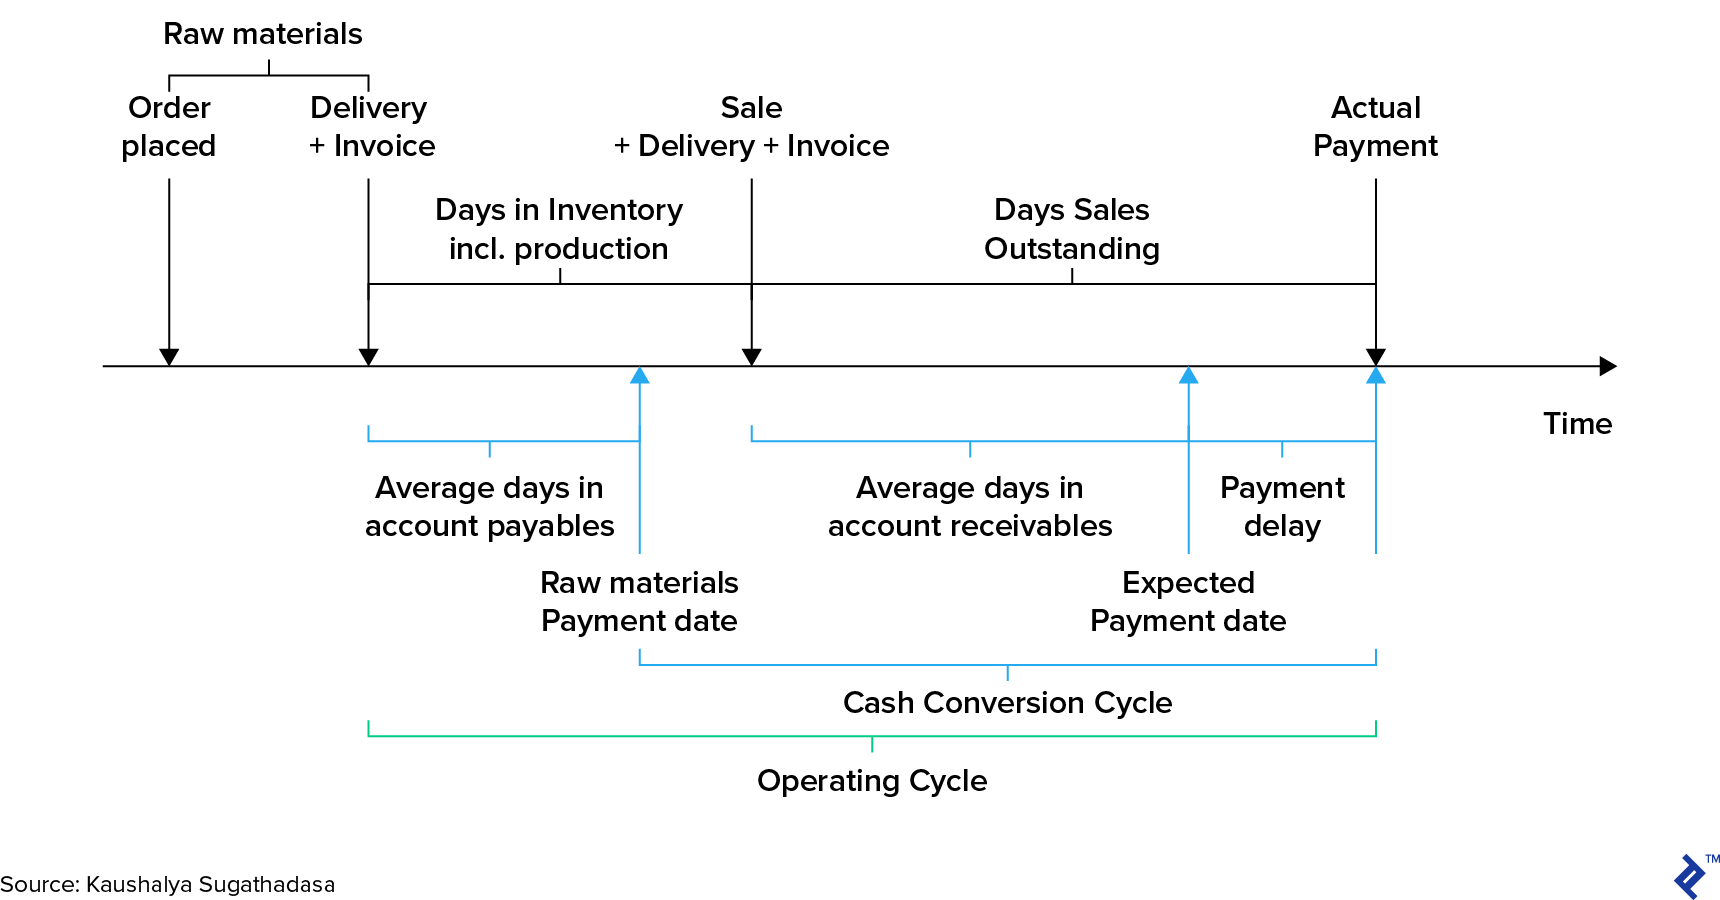 Cash Conversion Cycle Within the Operating Cycle of a Business